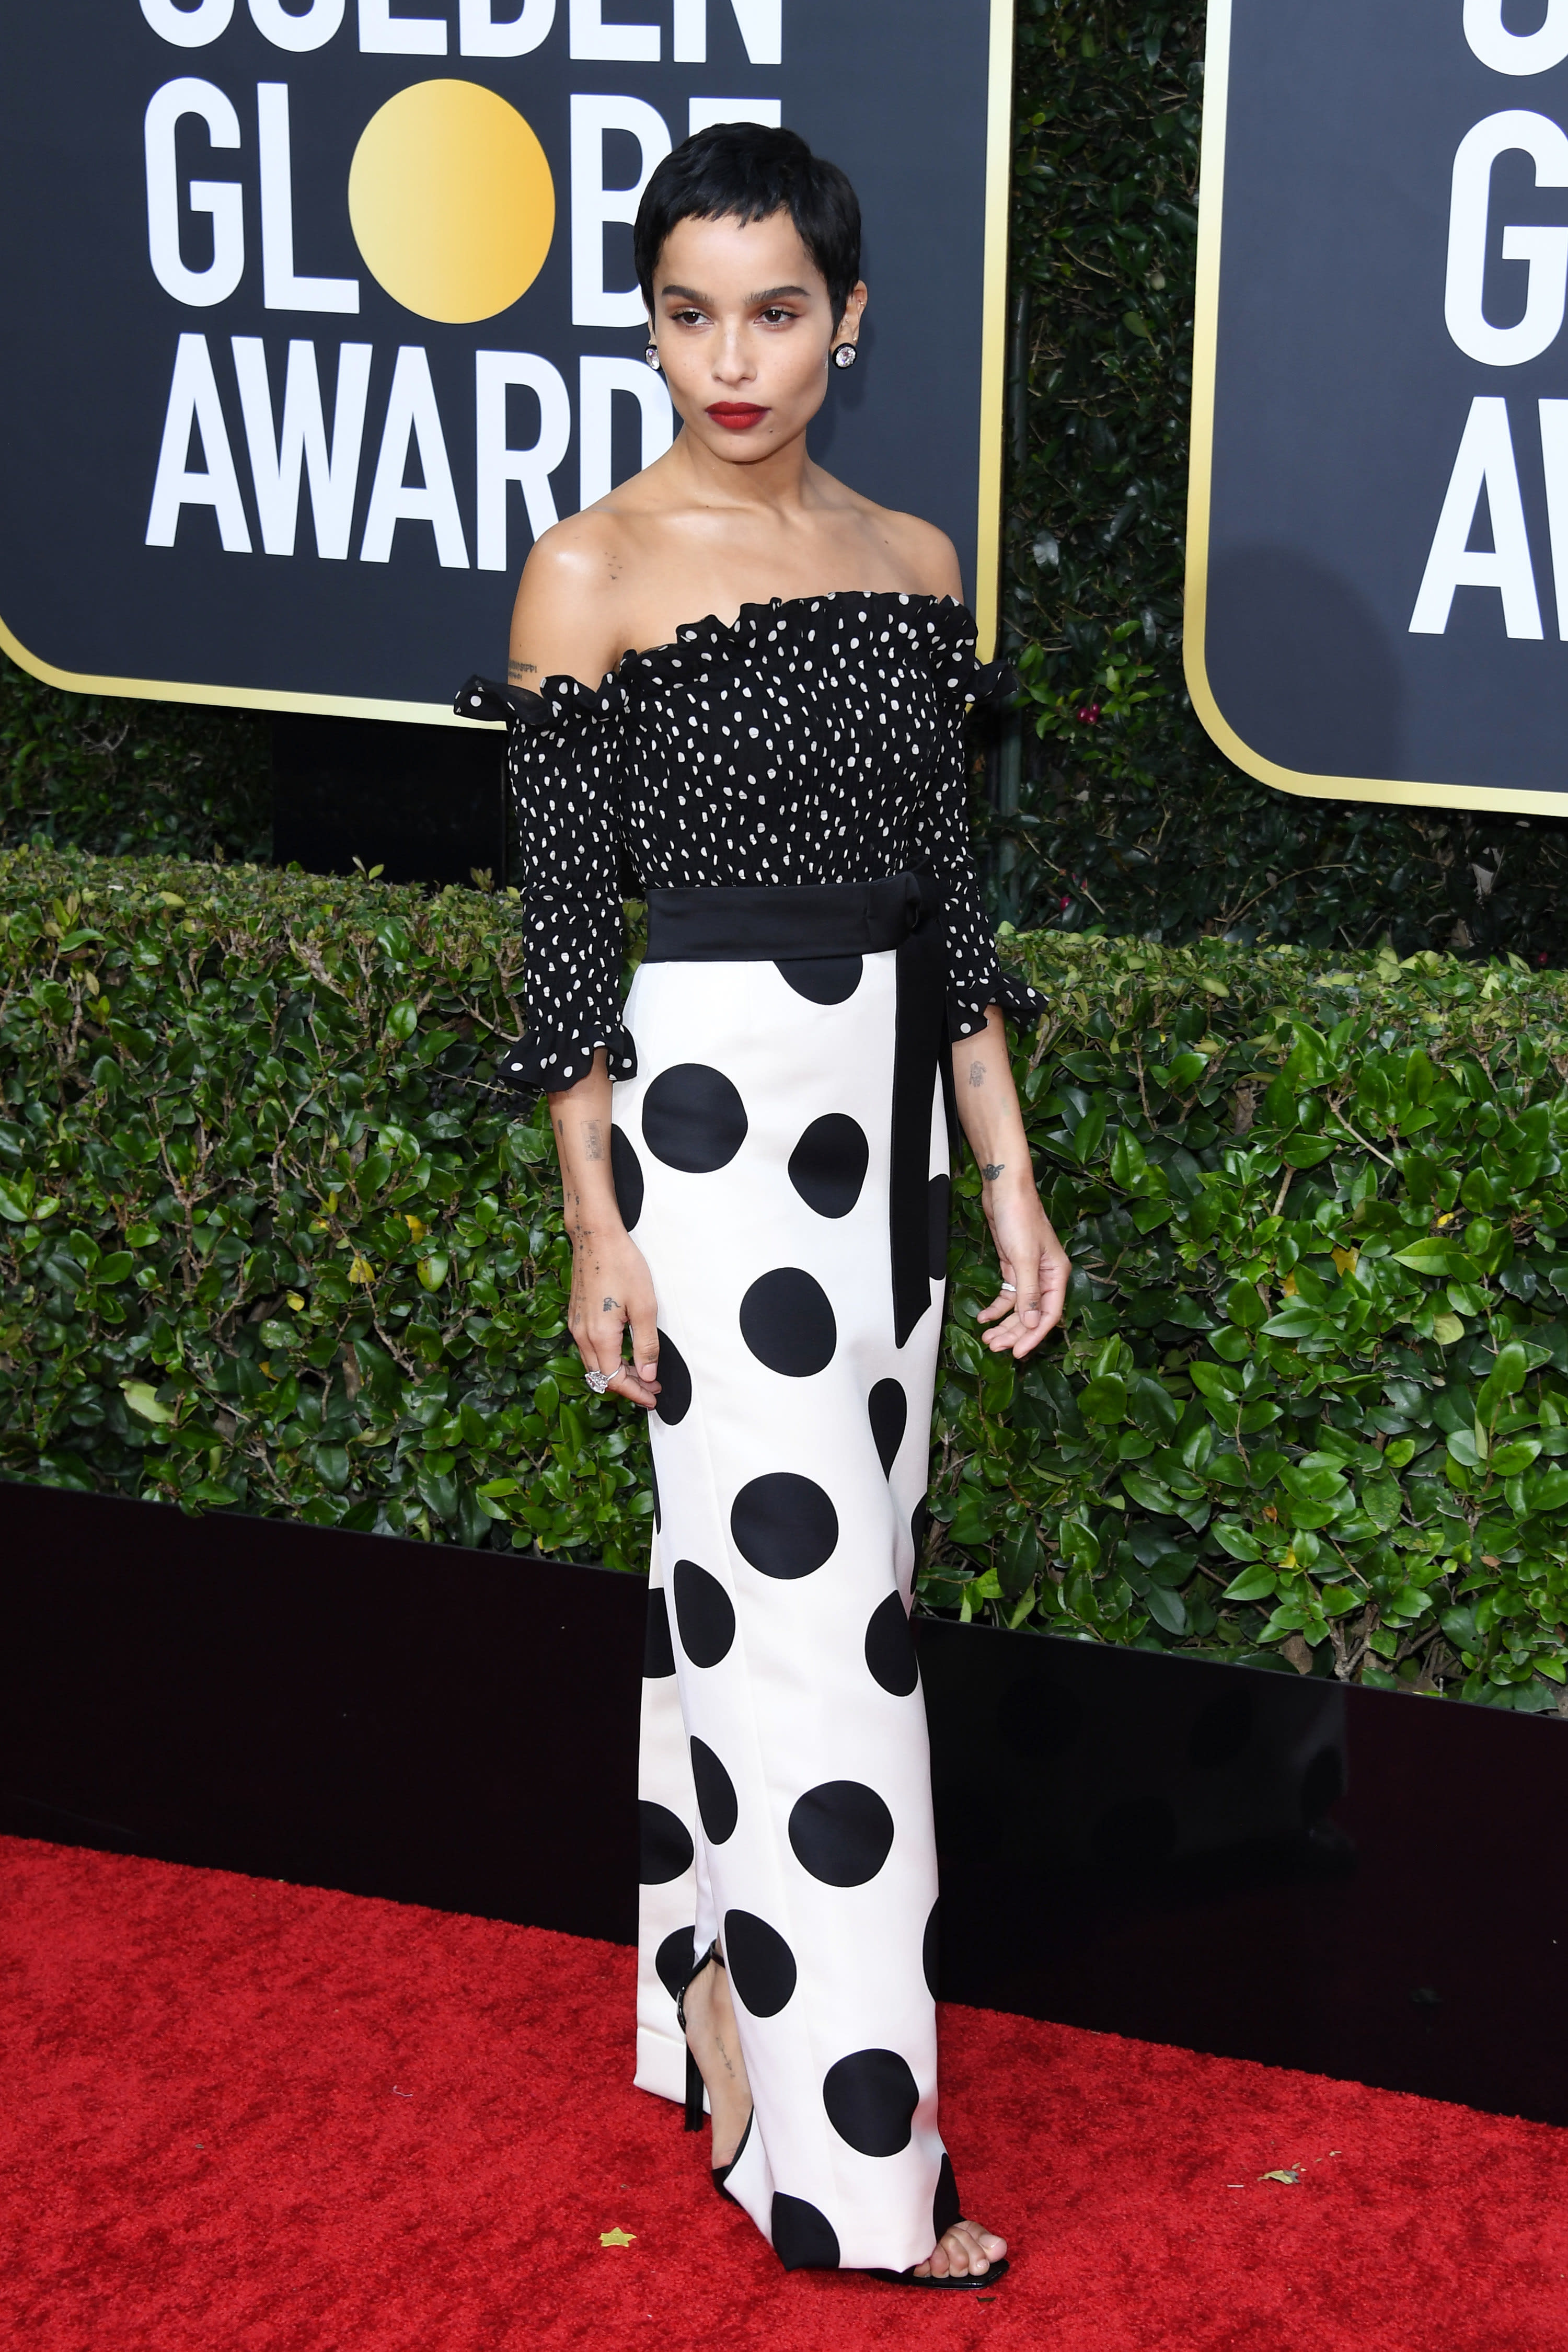 Zoe in polka dot gown on red carpet